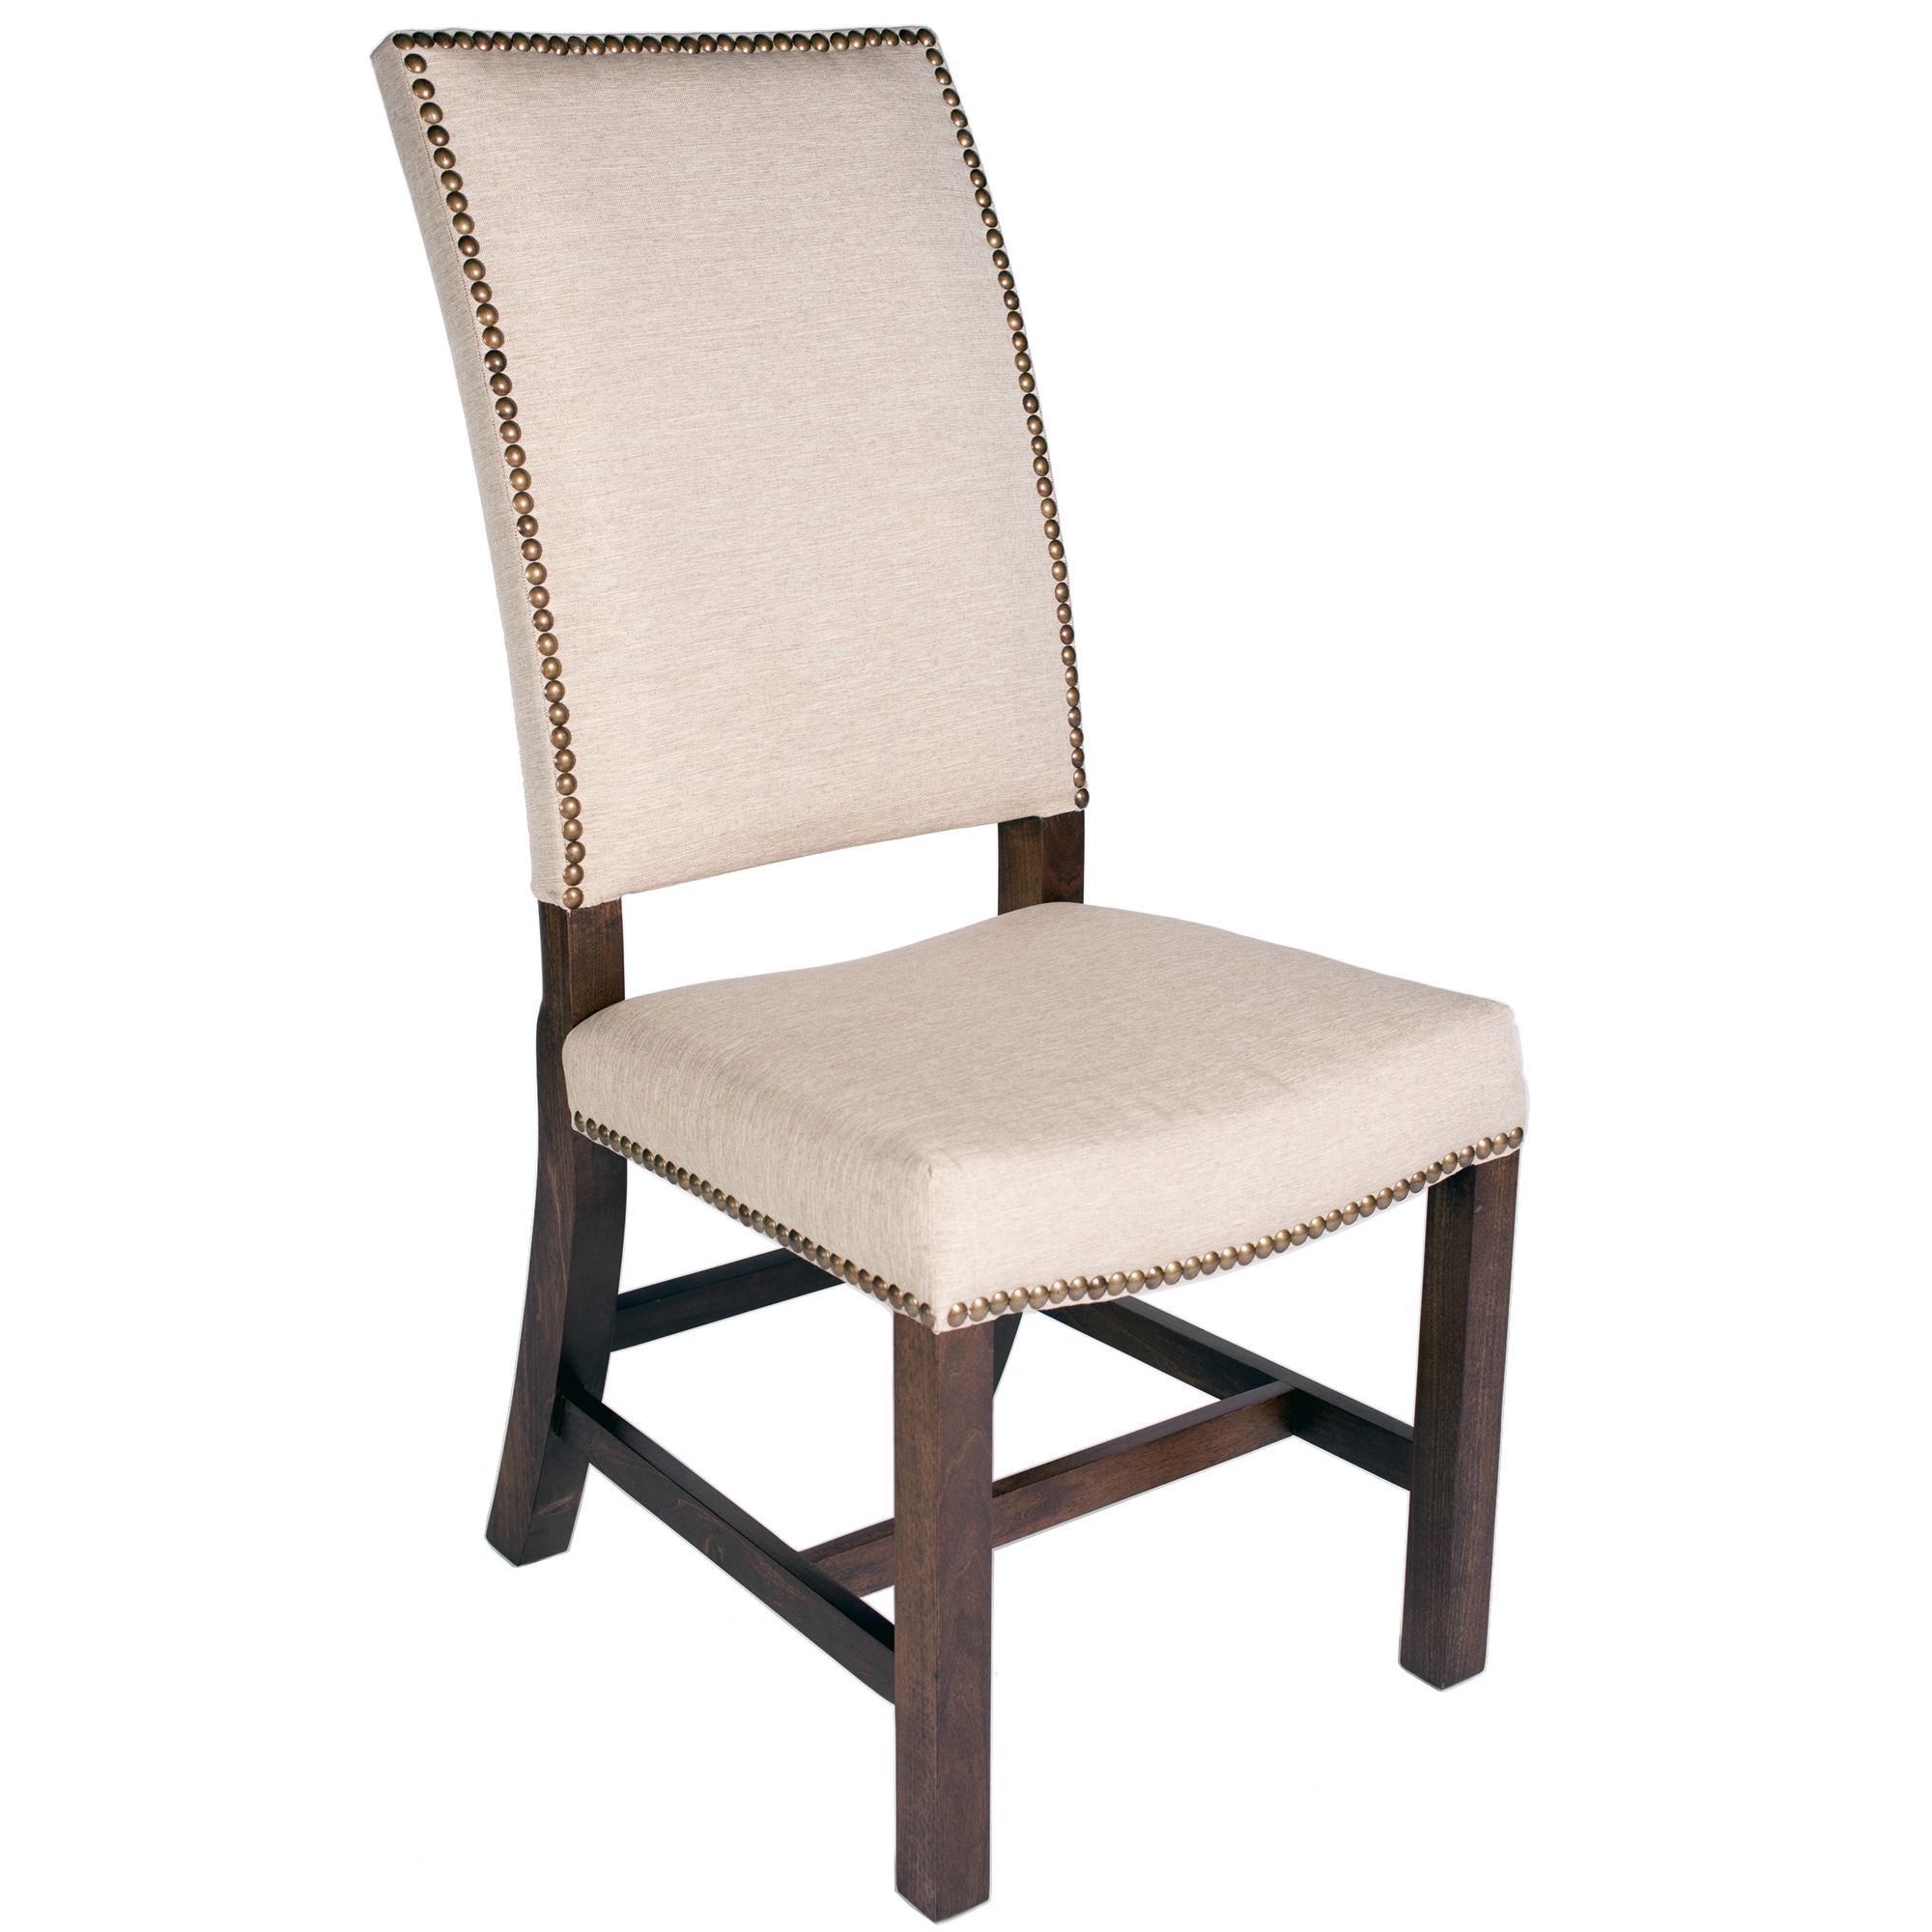 High back fabric chair with nail heads for Large dining chairs